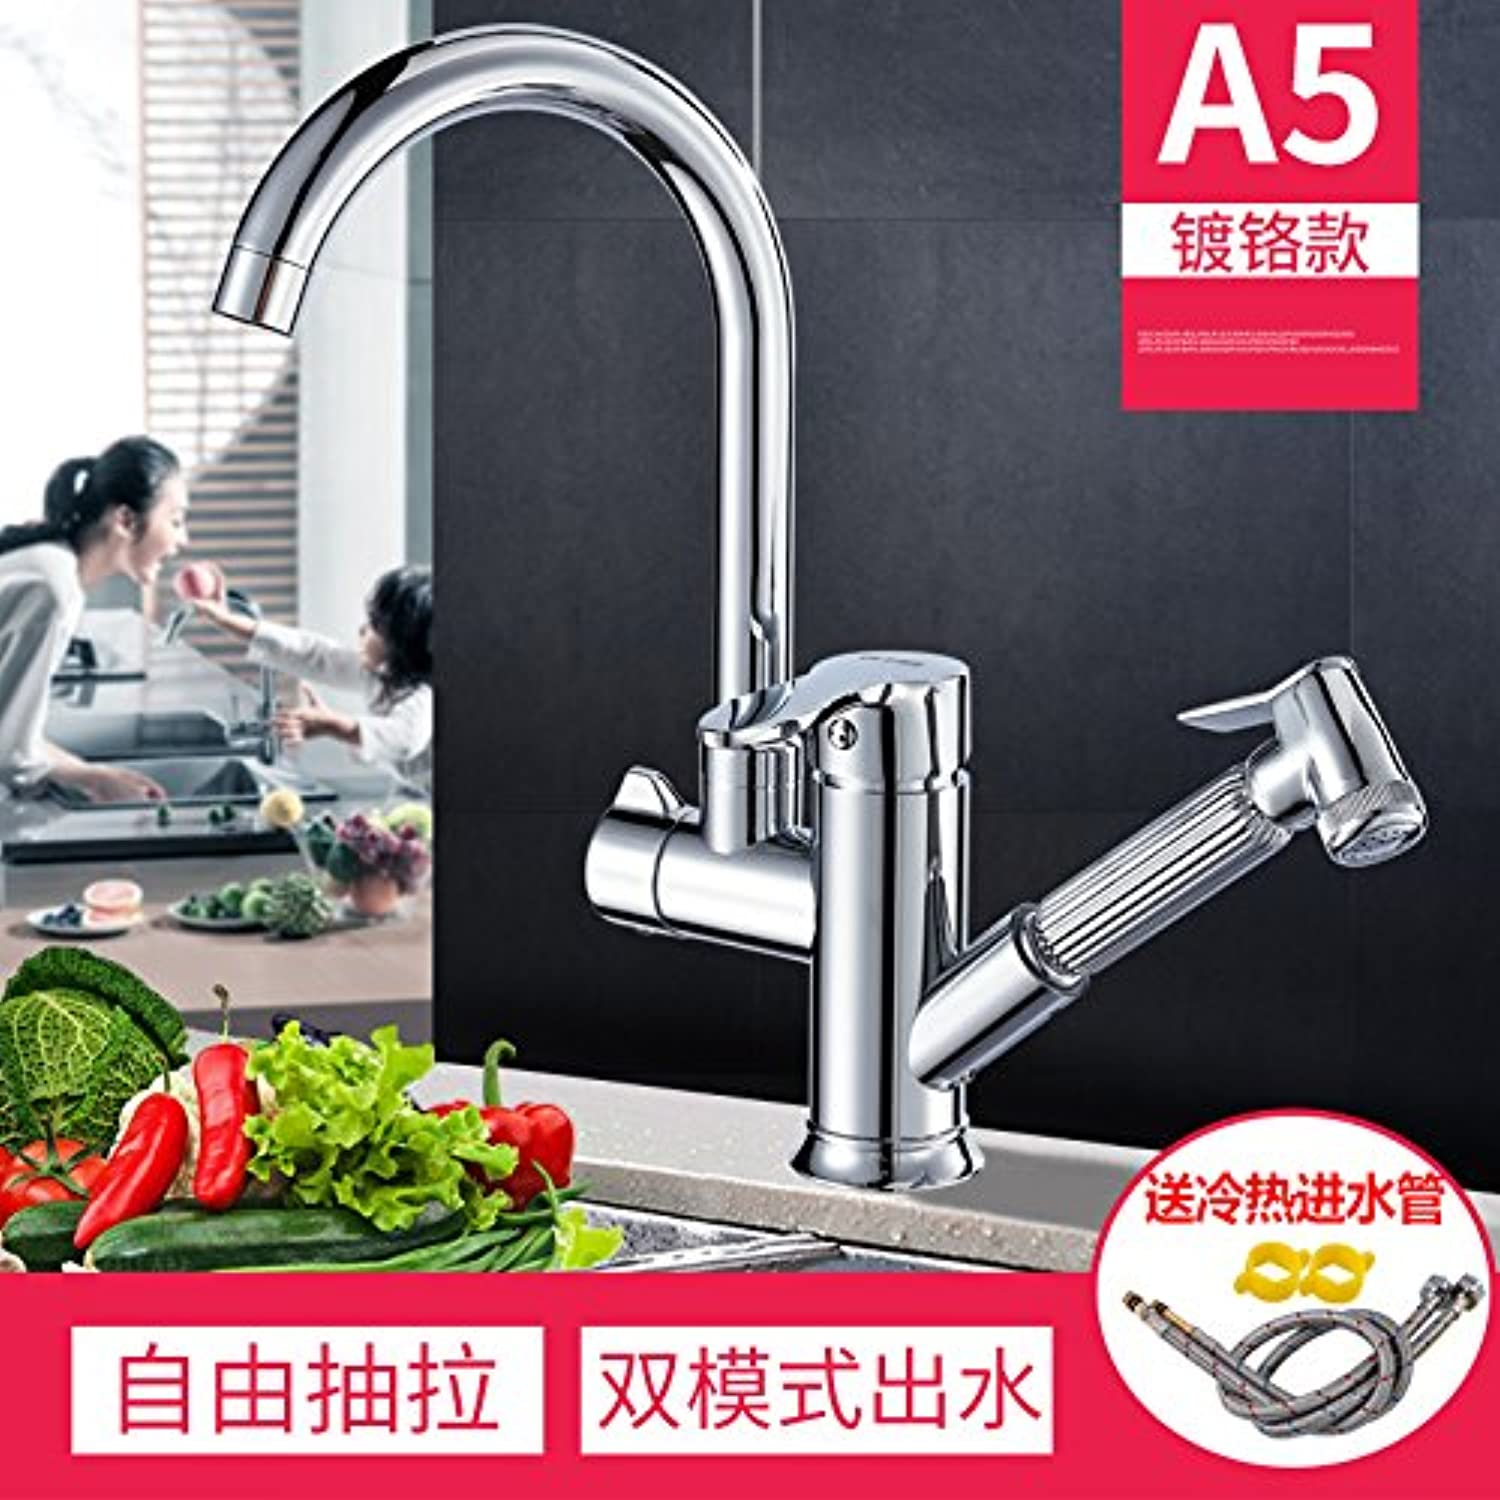 Hlluya Professional Sink Mixer Tap Kitchen Faucet Pull the hot and cold kitchen faucet full copper to turn the telescopic dish washing basin washing dishes pool brushed sink mixer,A5 Chrome